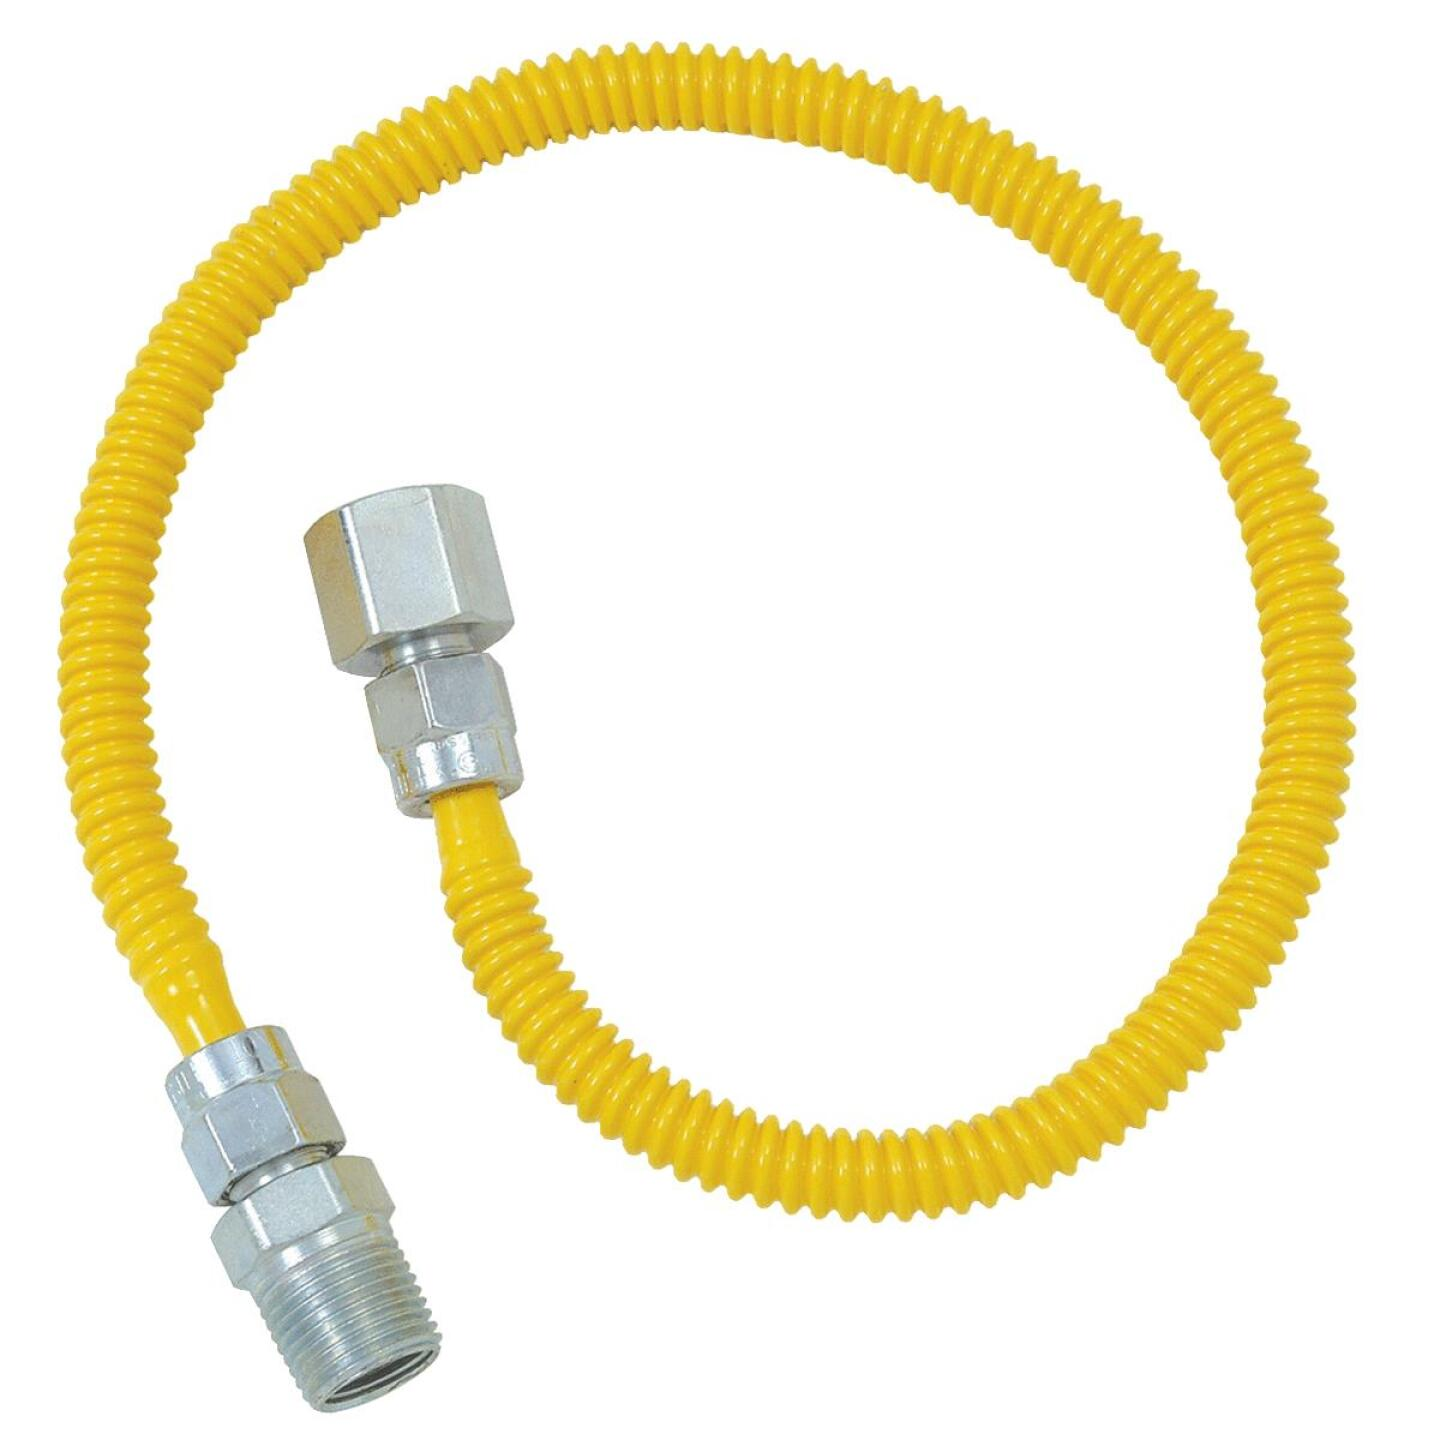 BrassCraft ProCoat 3/8 In. x 1/4 In. x 60 In. Gas Connector Image 1